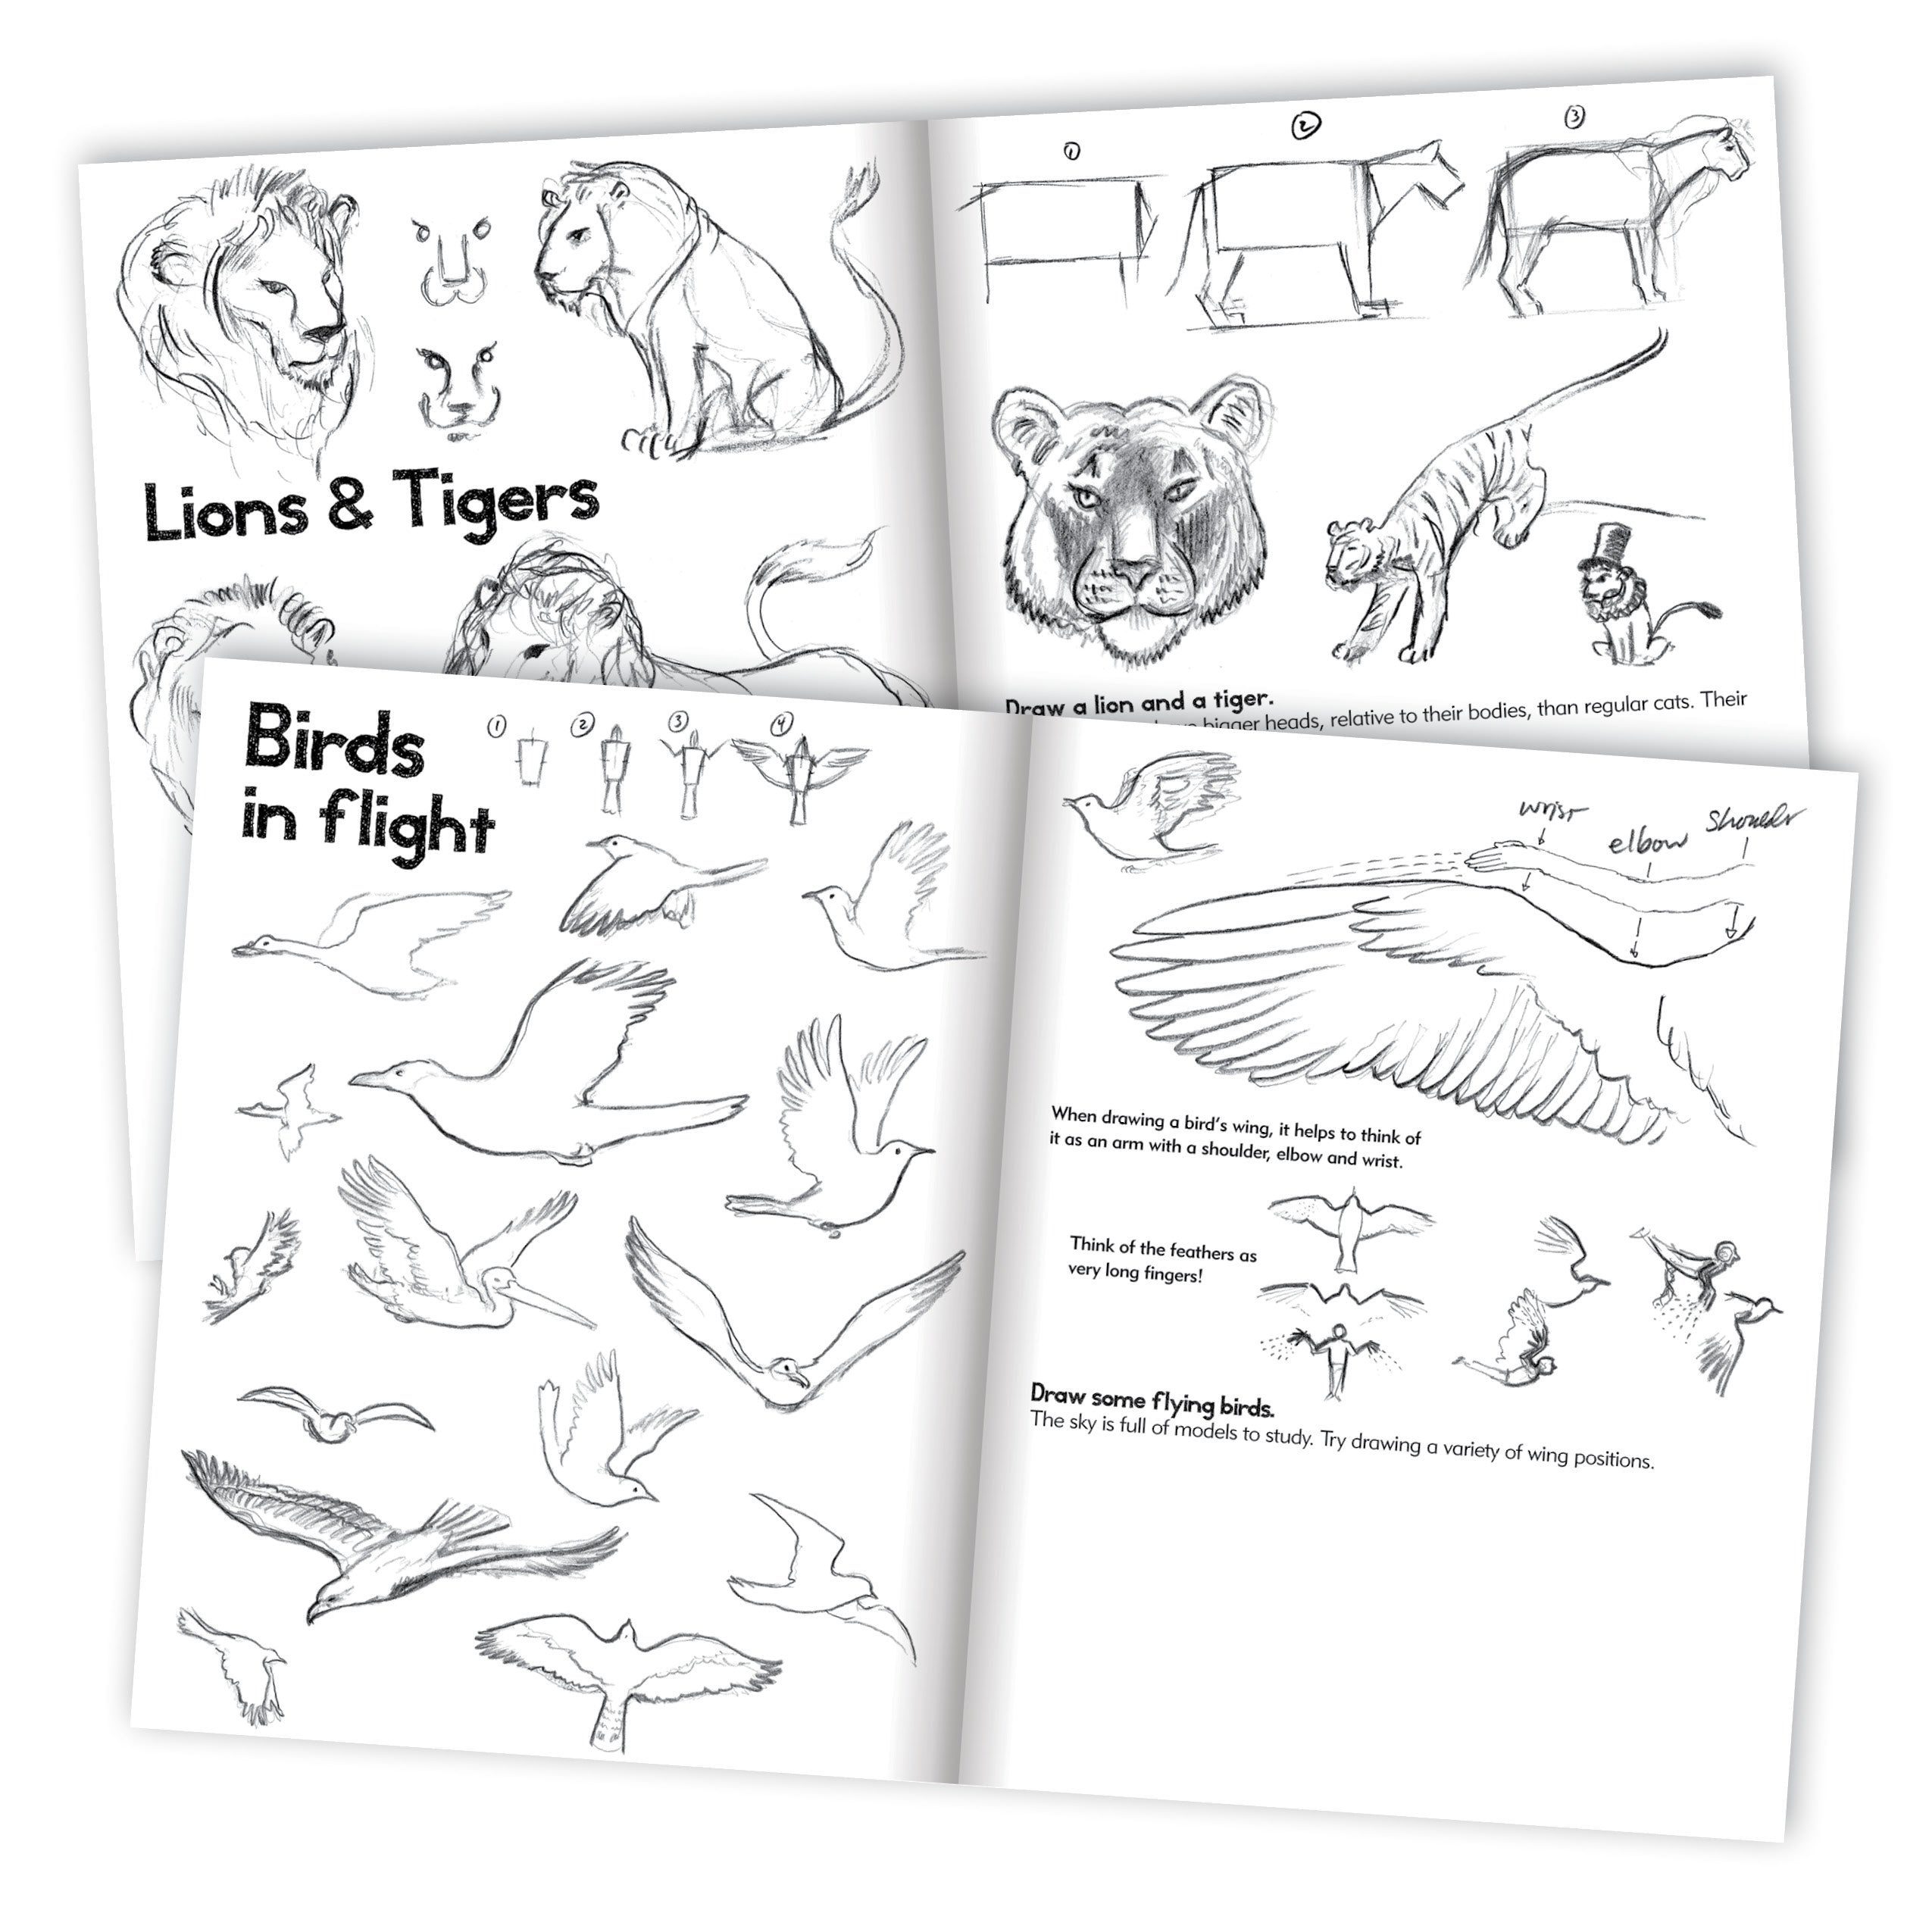 How to learn to draw on paper